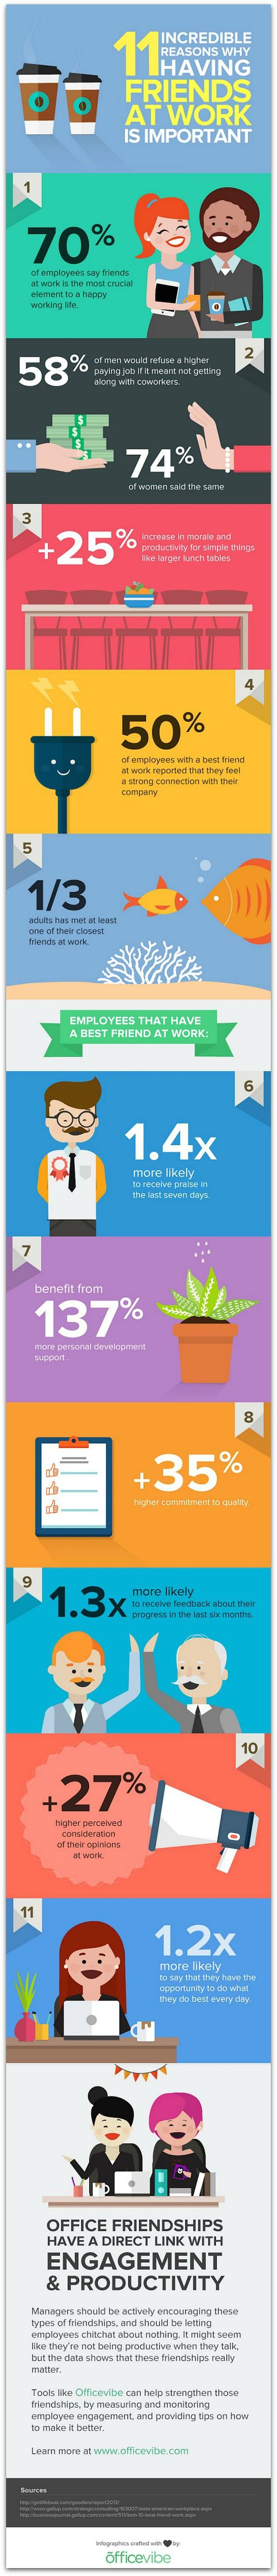 Infographic: How work friendships improve employee engagement | via #RaganPR